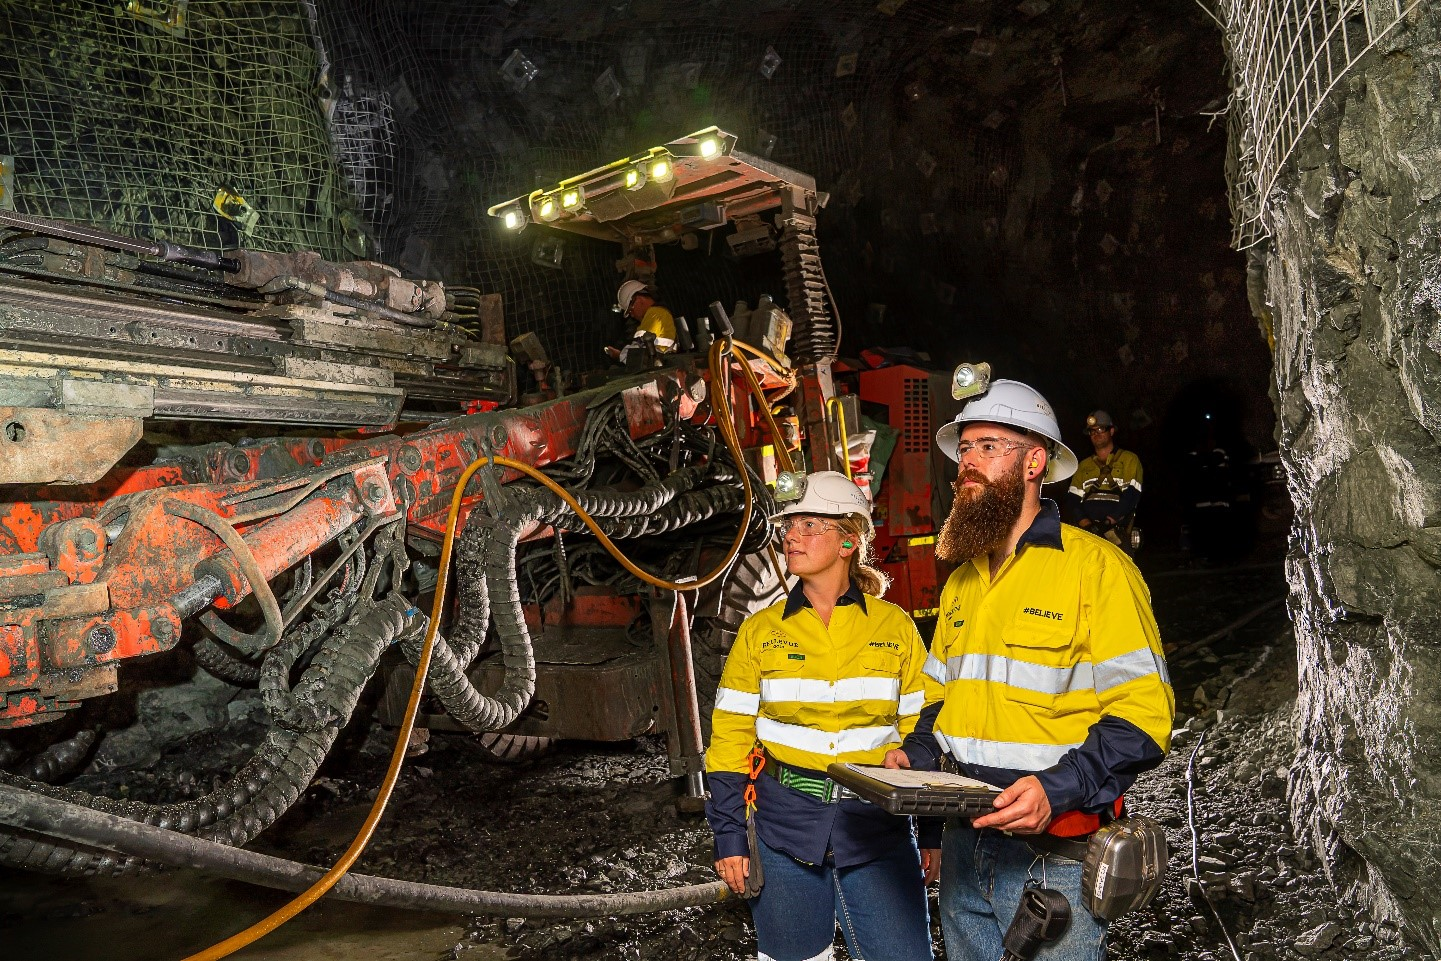 Bellevue poised for re-rating as it joins exclusive global club of top-shelf gold mines